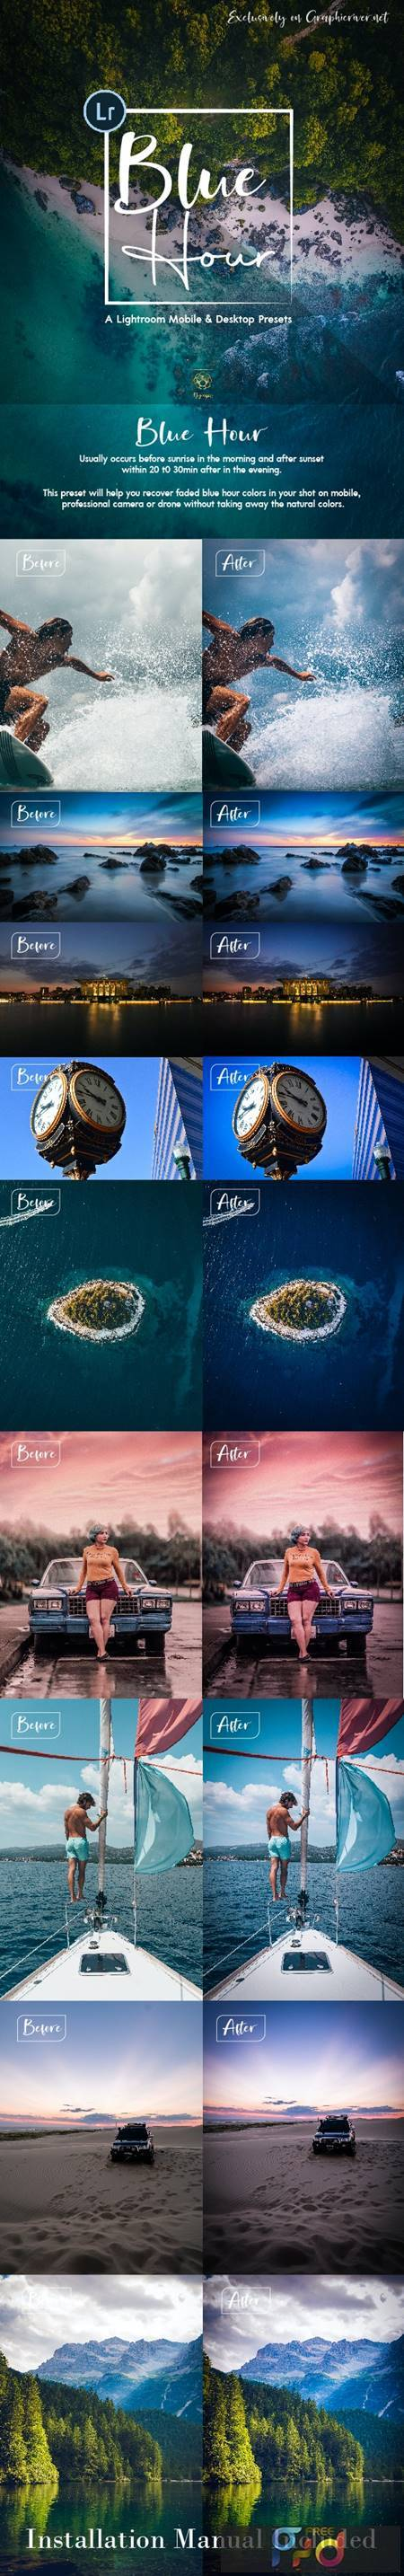 Blue Hour Lightroom Mobile and Desktop Presets 26945640 1